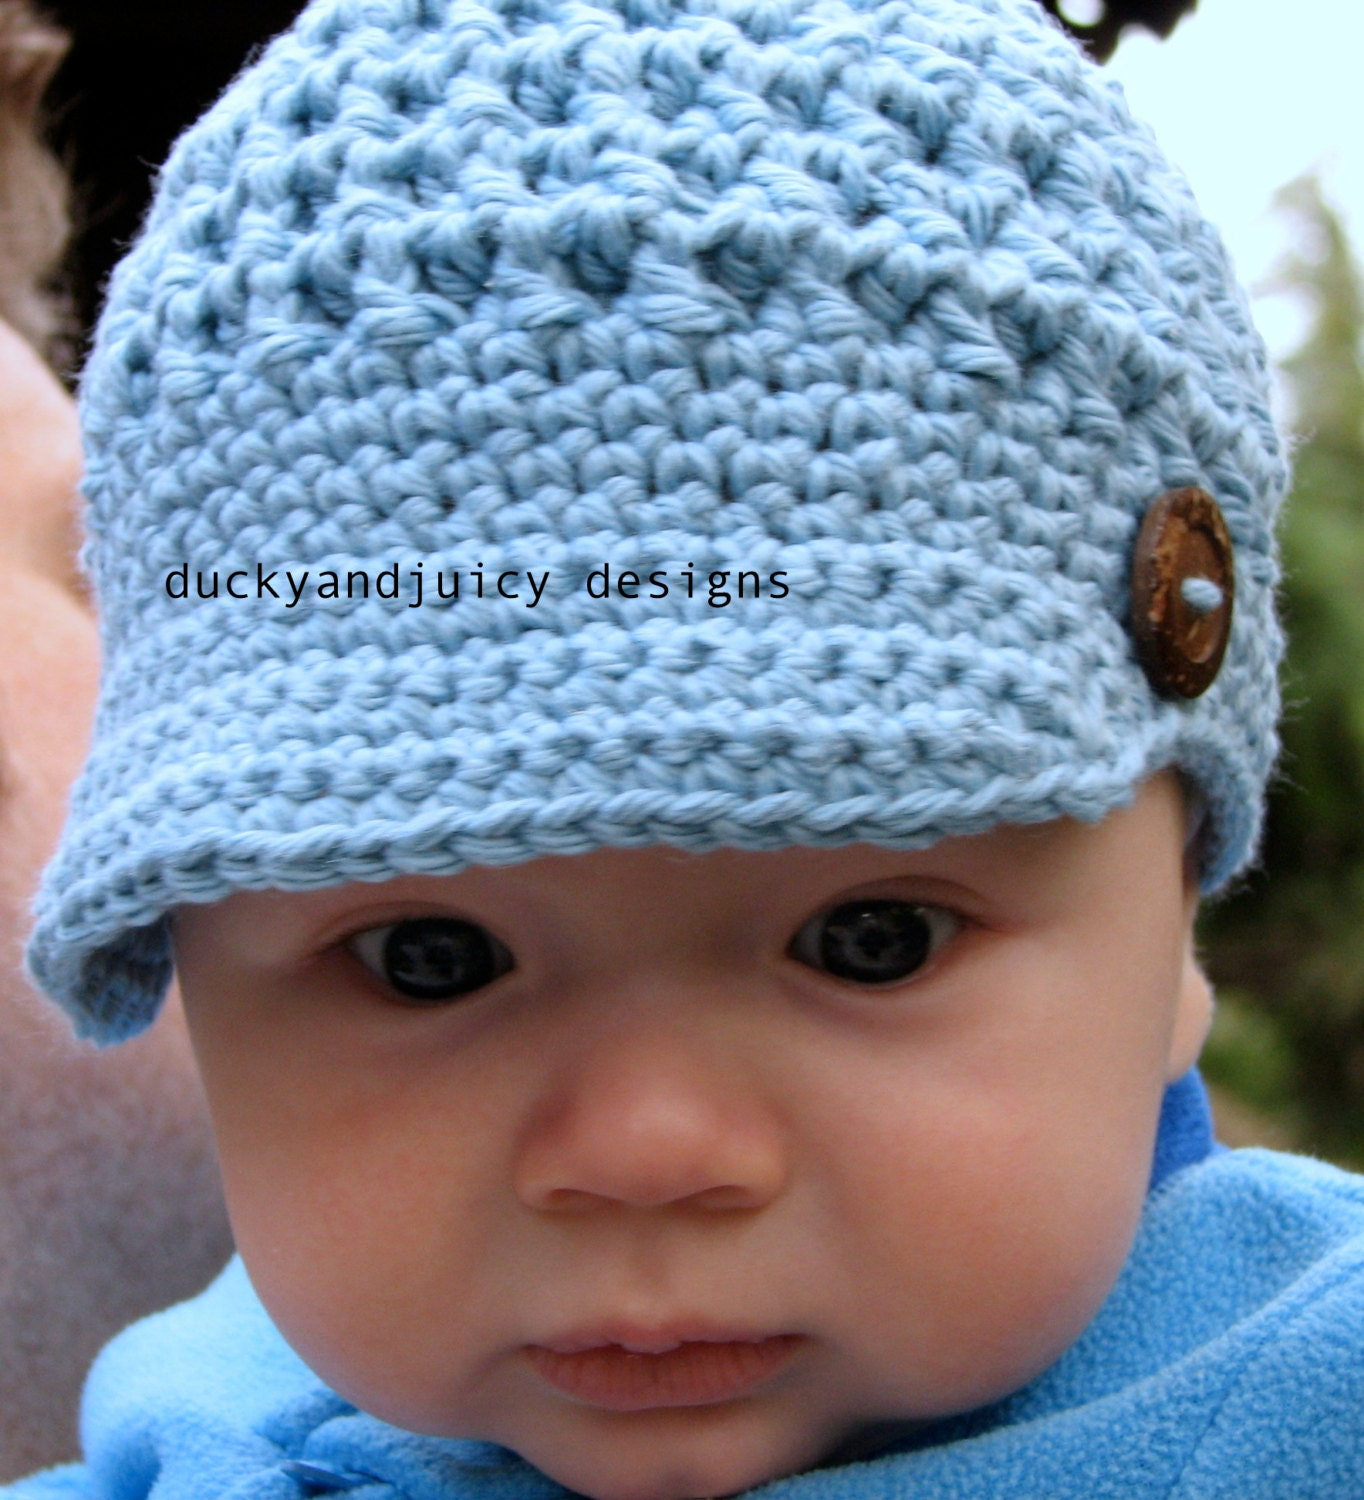 Crochet Stitches Baby Hats : Baby Crochet Hat Baby Boy Hat Baby Girl Hat by ducklyandjuicy